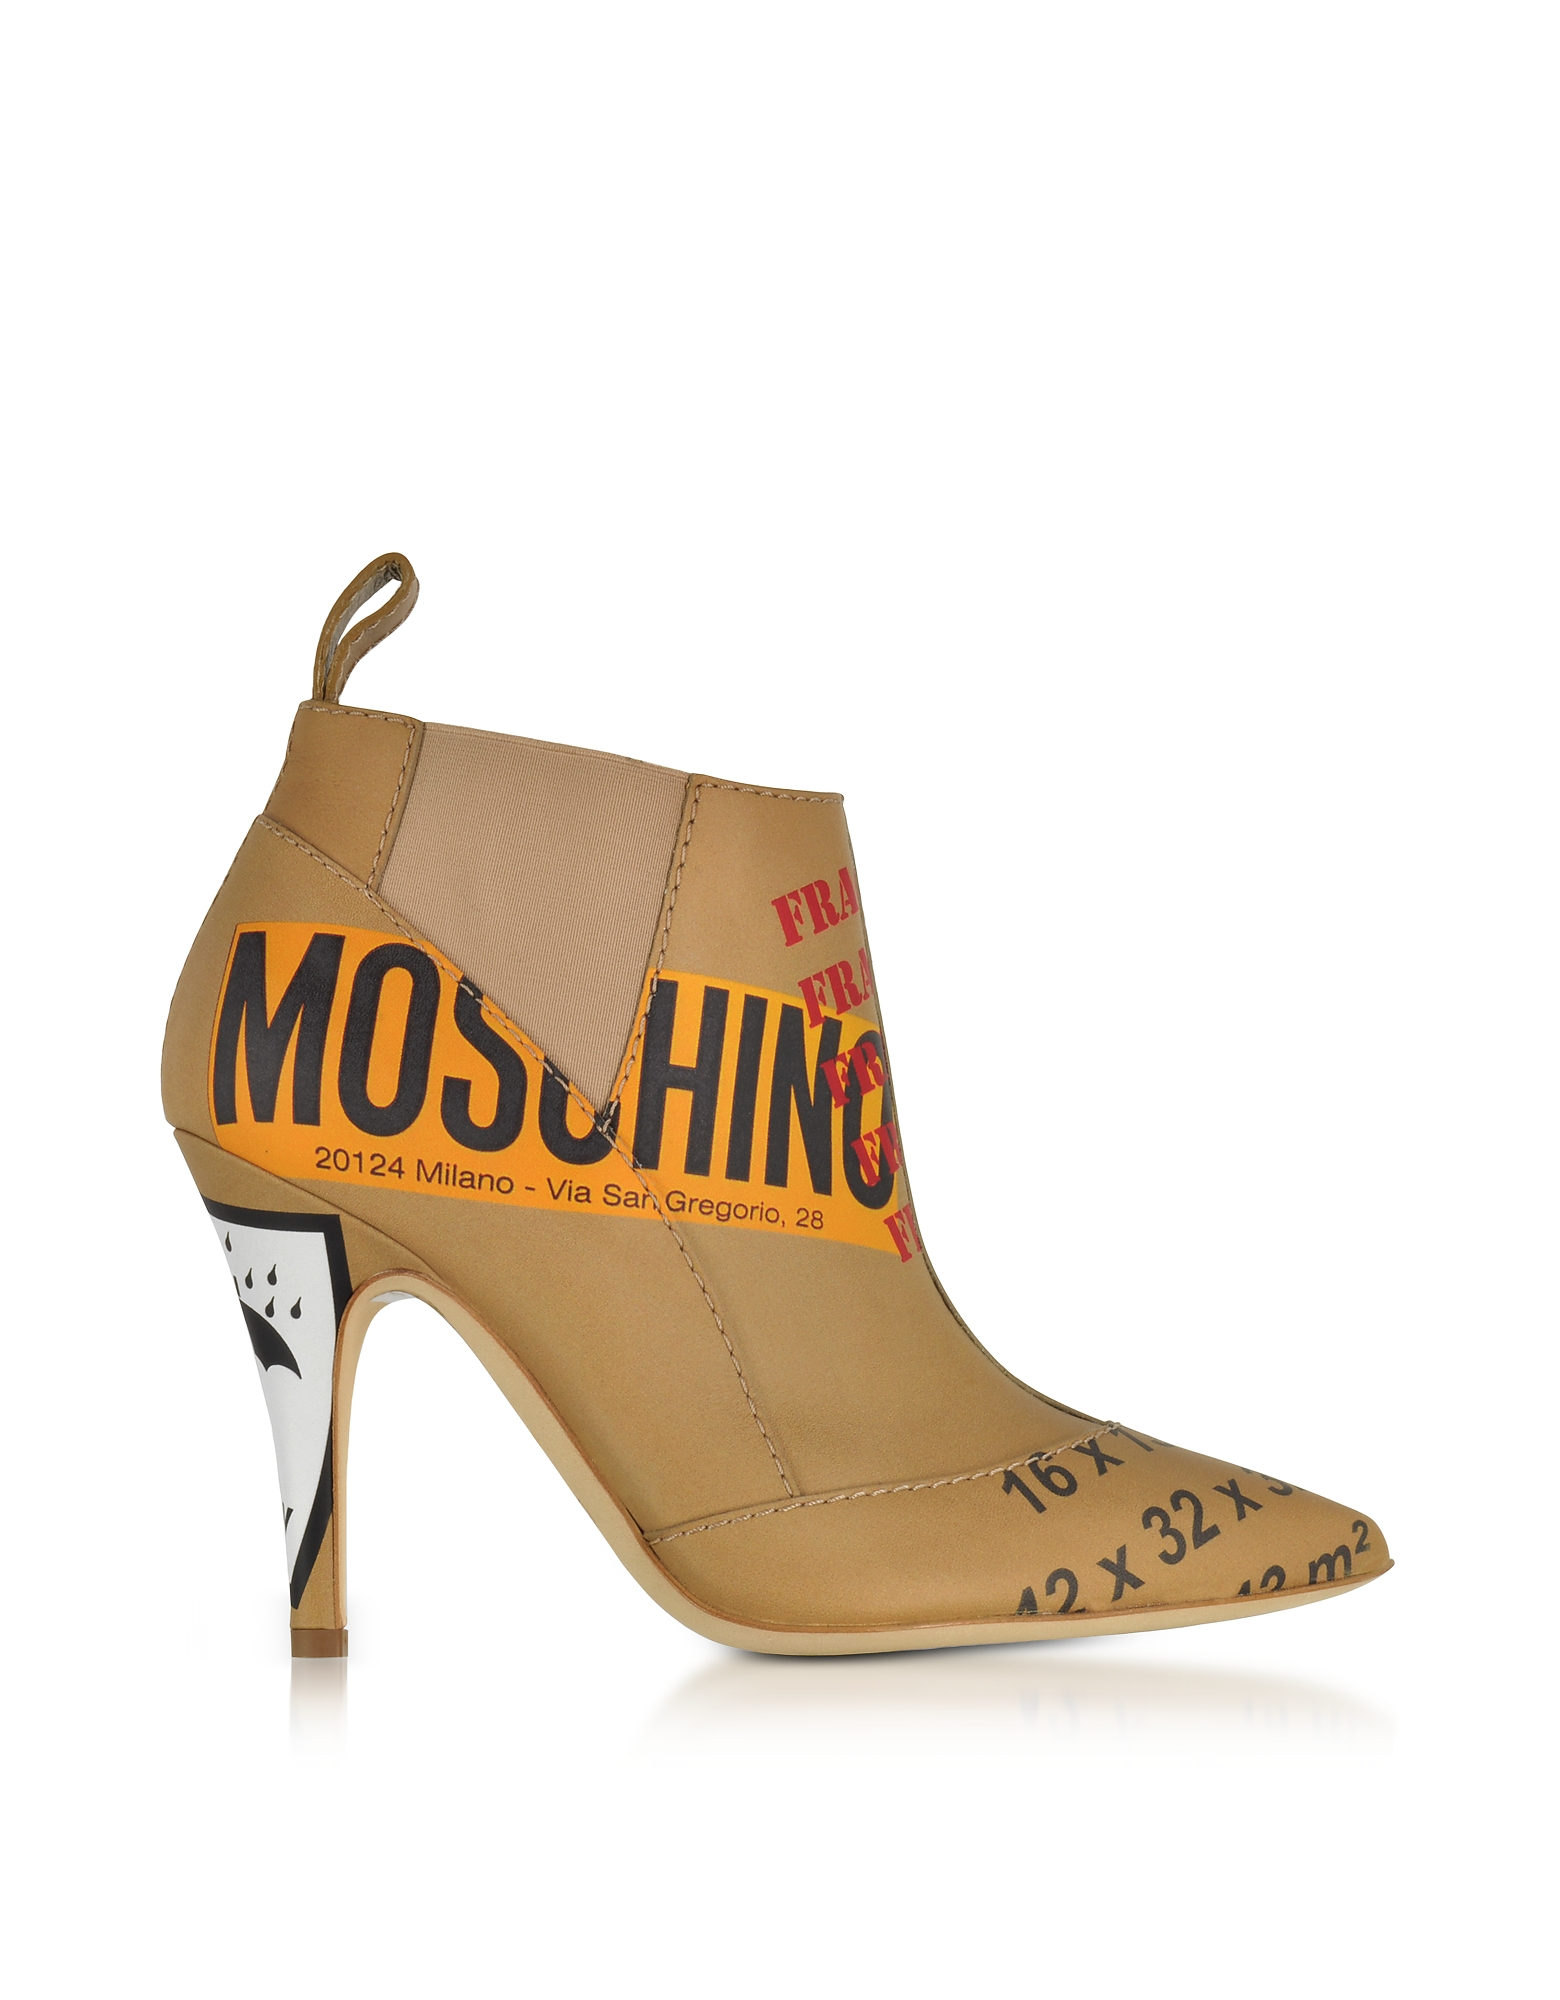 Moschino Shoes, Beige Label Printed Leather Booties